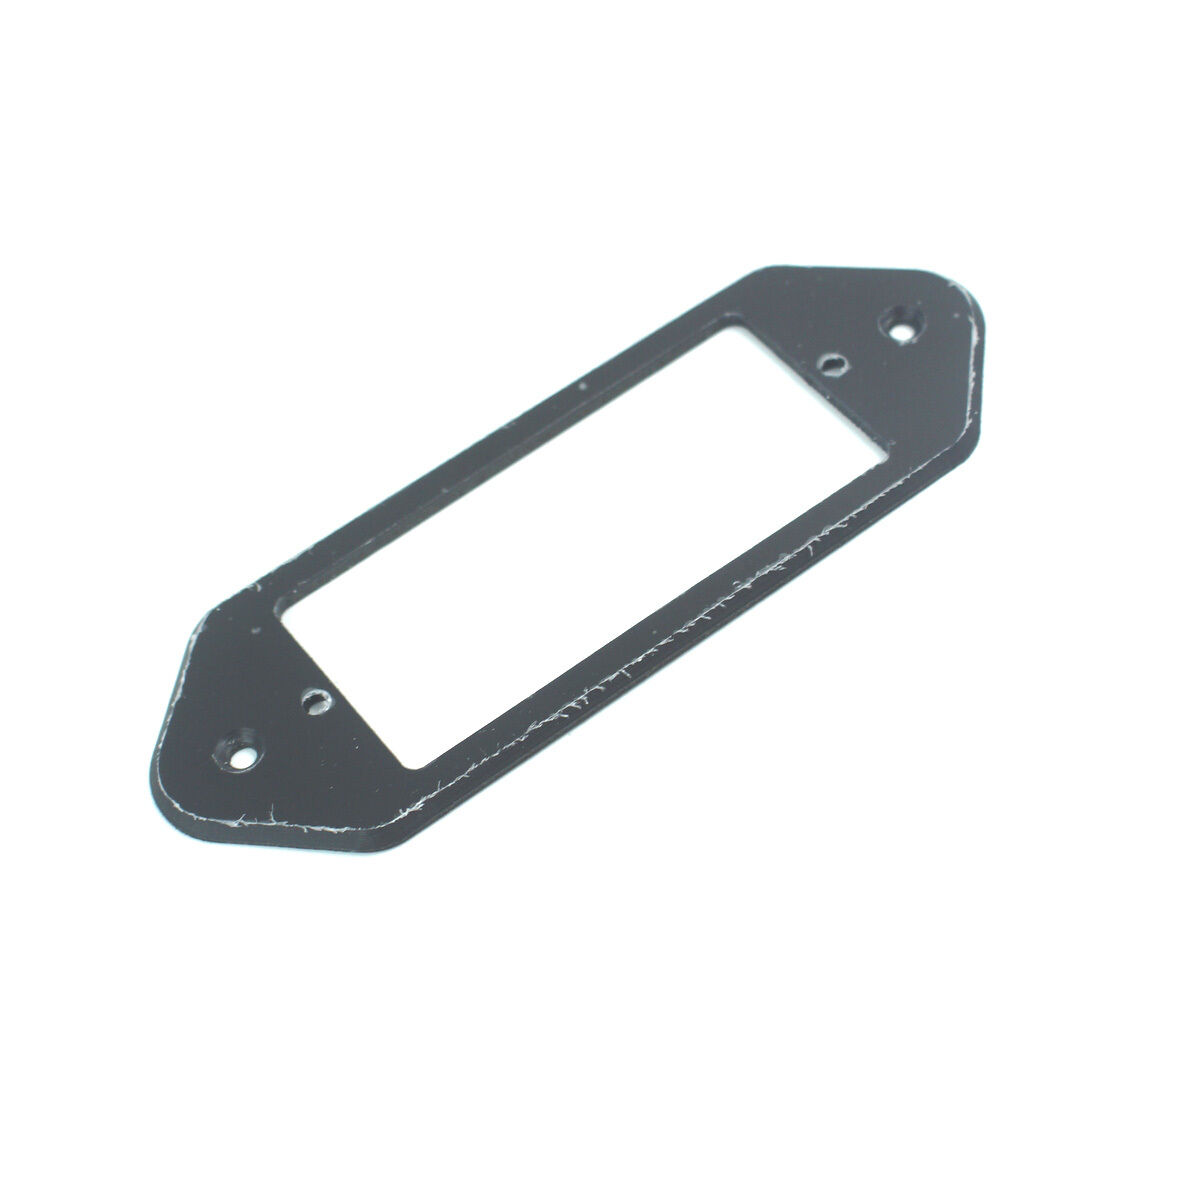 P90 Dog Ear To Mini Humbucker Pickup Adapter Ring 1 Ply Black Ebay Fender Telecaster Custom Shop 4 Way Switch 0992250000 Parts Is Norton Secured Powered By Verisign